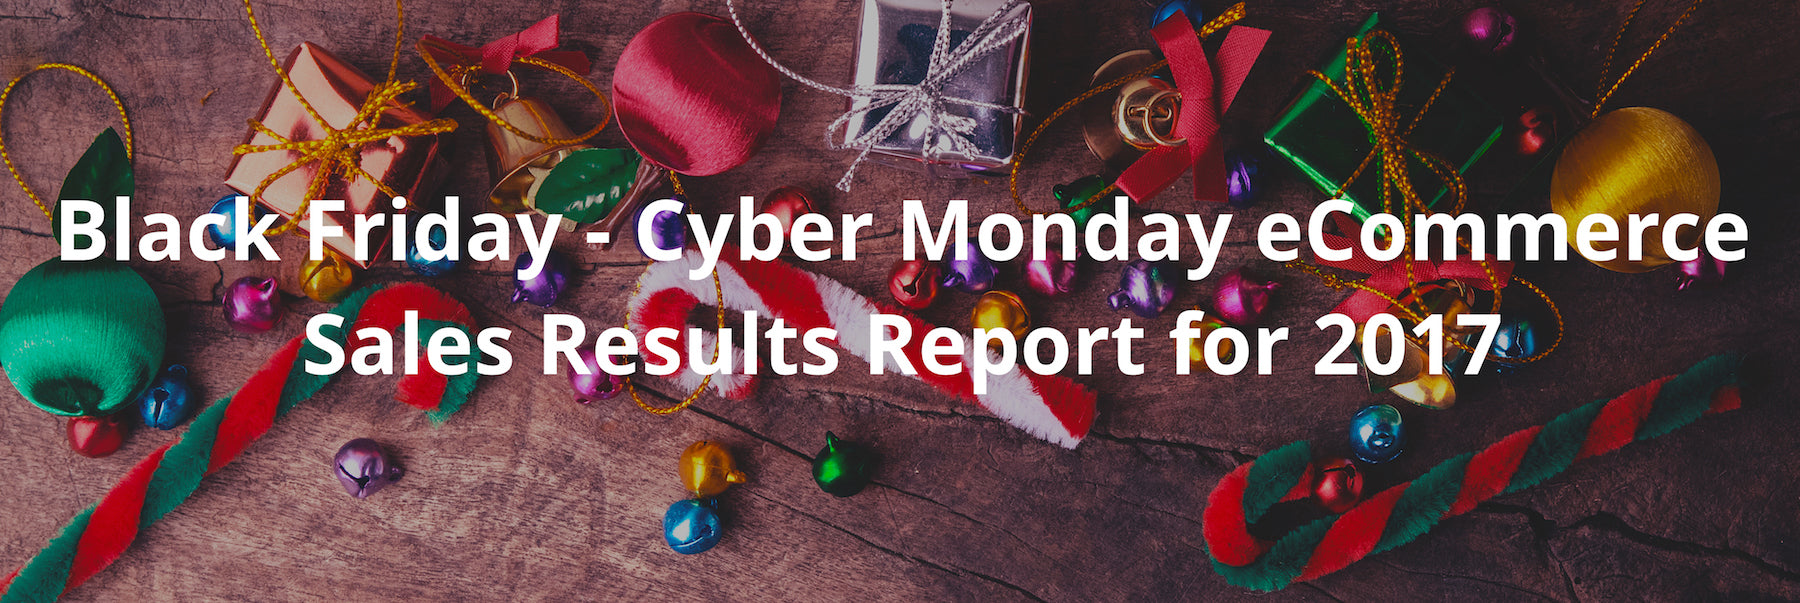 Black Friday - Cyber Monday eCommerce Sales Results Report 2017